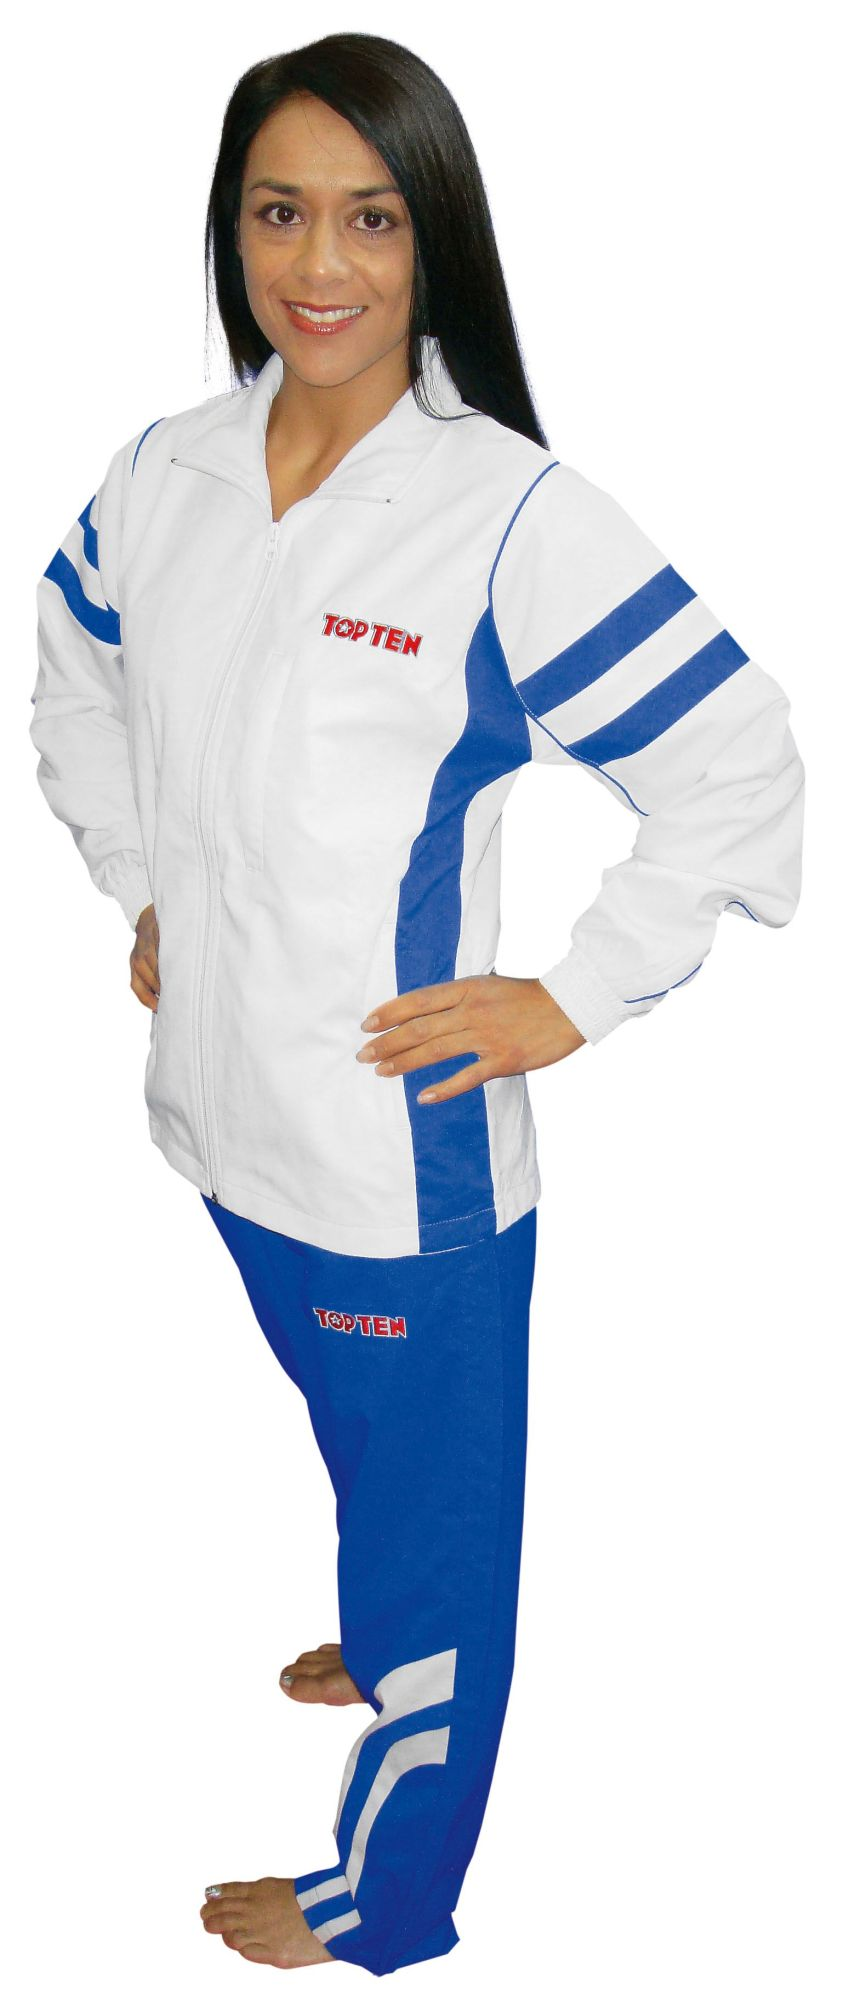 "TOP TEN Trainingspak ""Fight Elite"" Wit - Blauw"